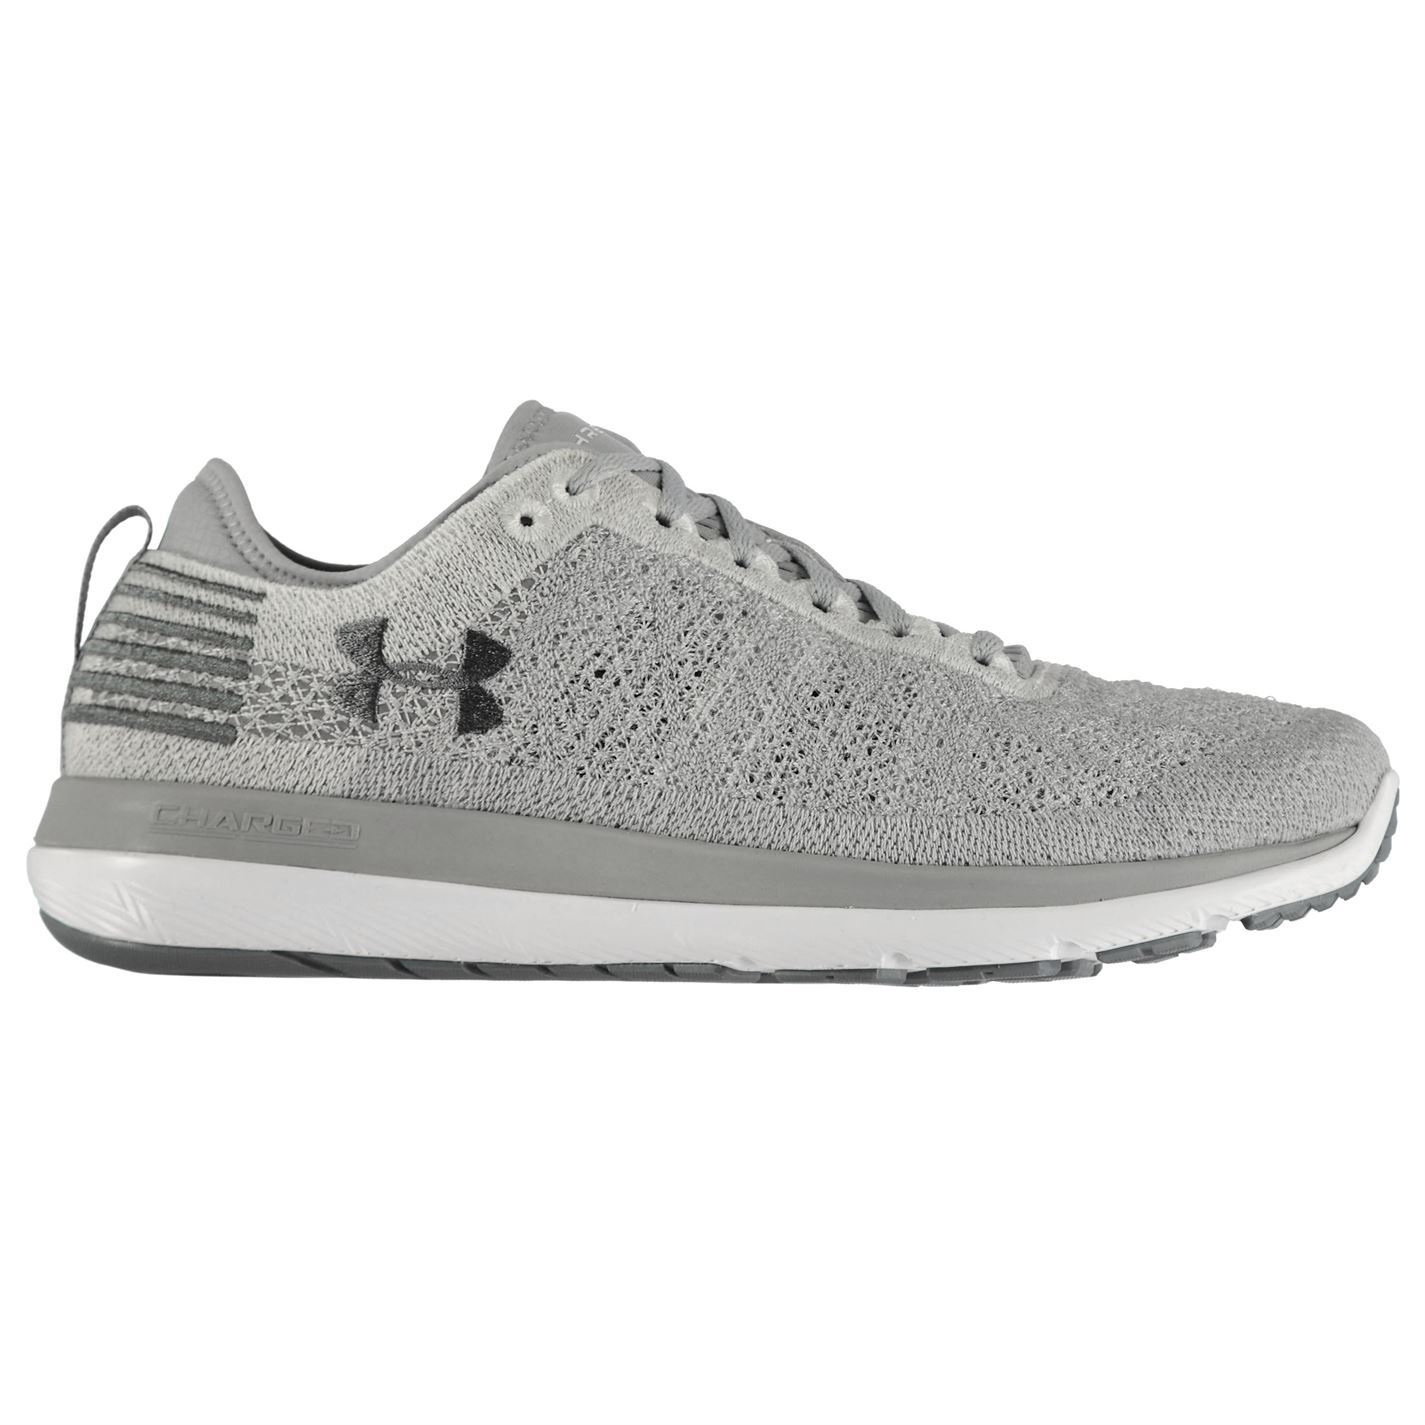 buy popular 18345 7cb92 Details about Under Armour Threadborne Fortis Running Shoes Mens Grey  Fitness Trainers Sneaker